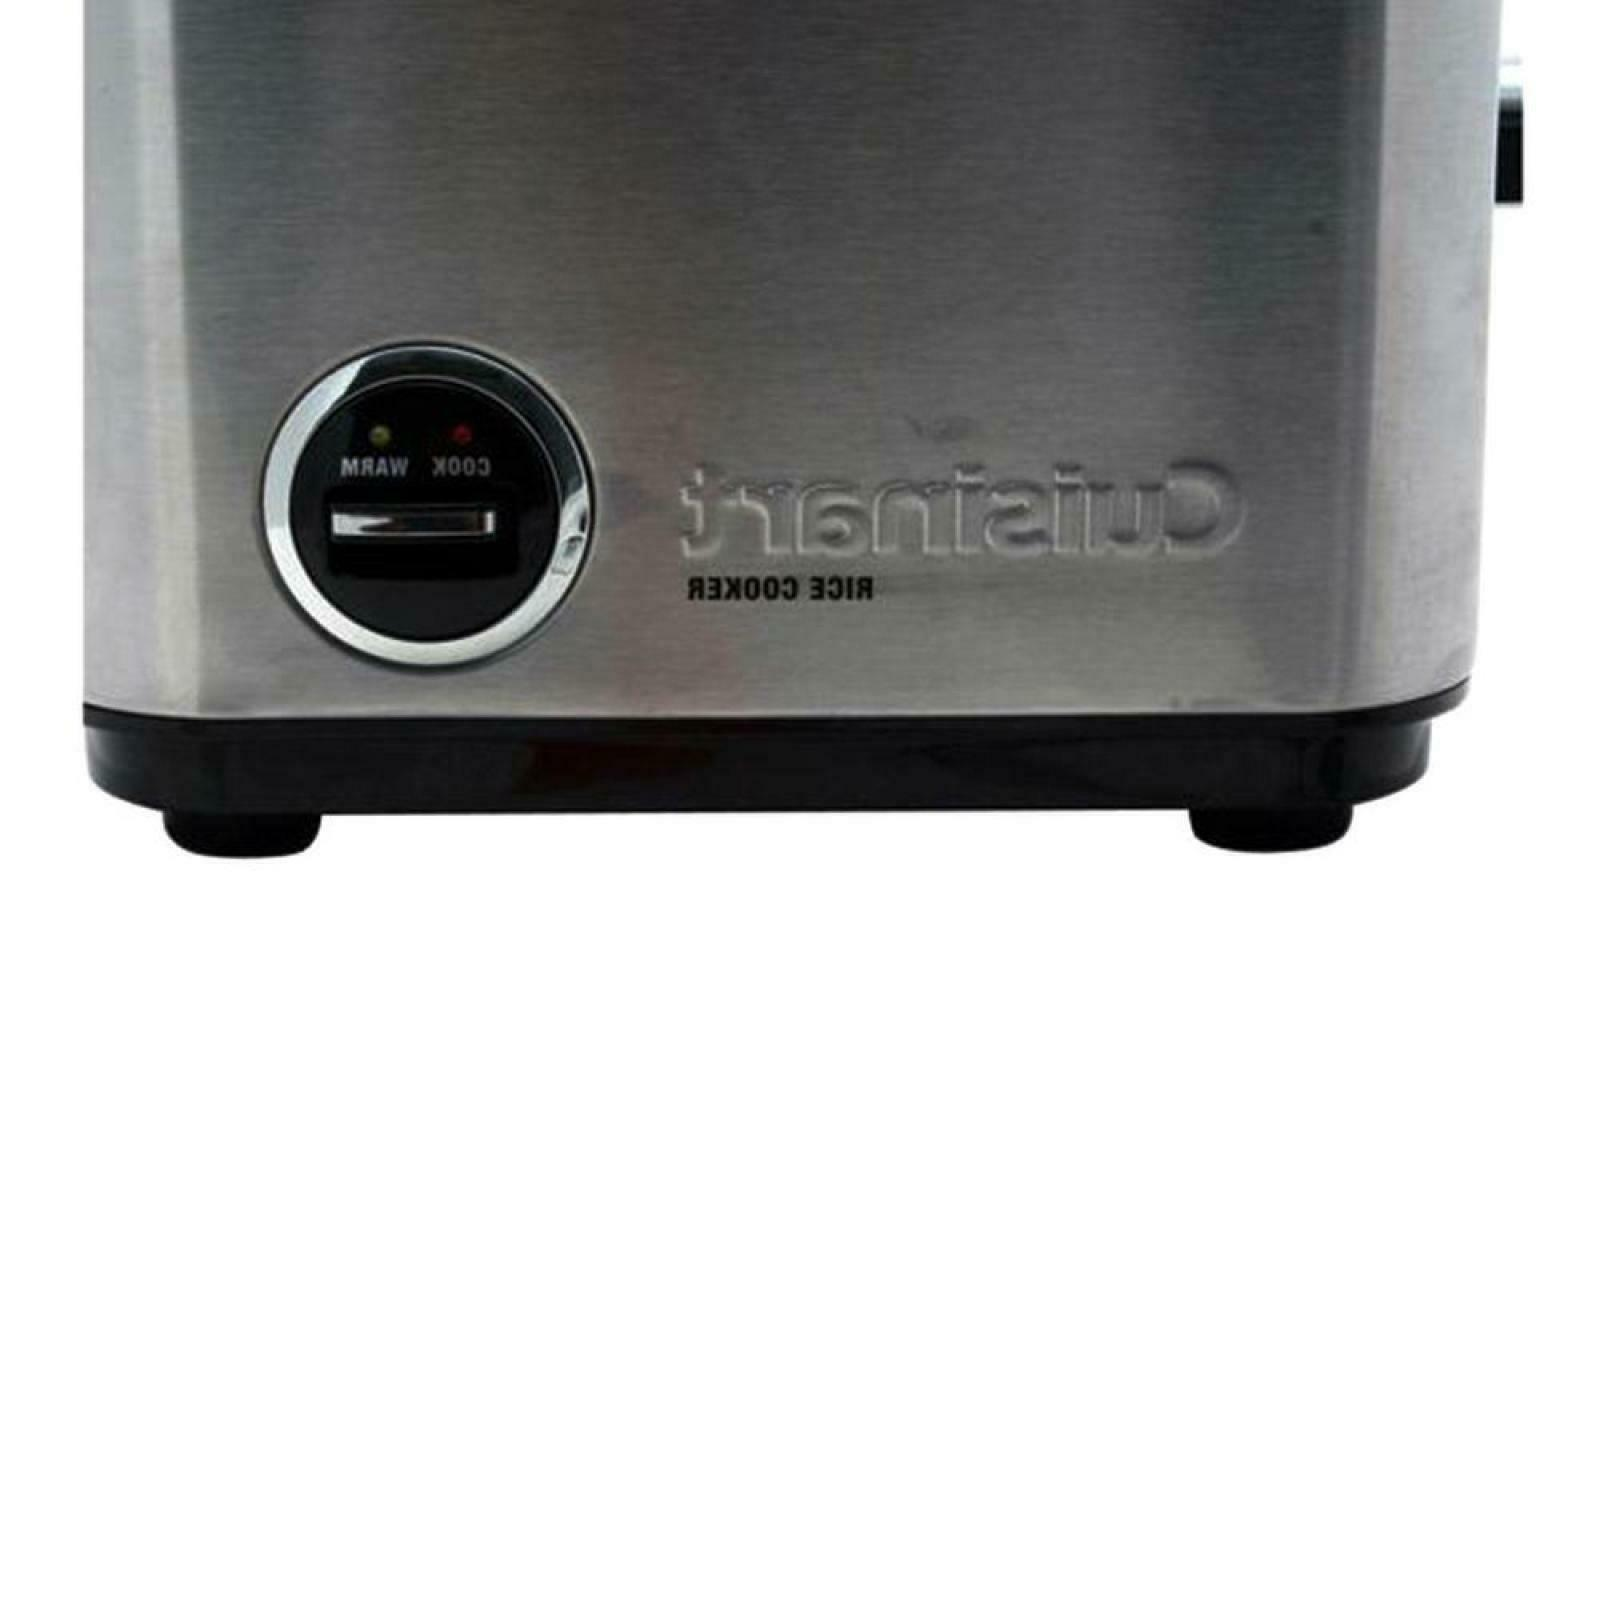 8-Cup Cooker With Cord Storage And Automatic